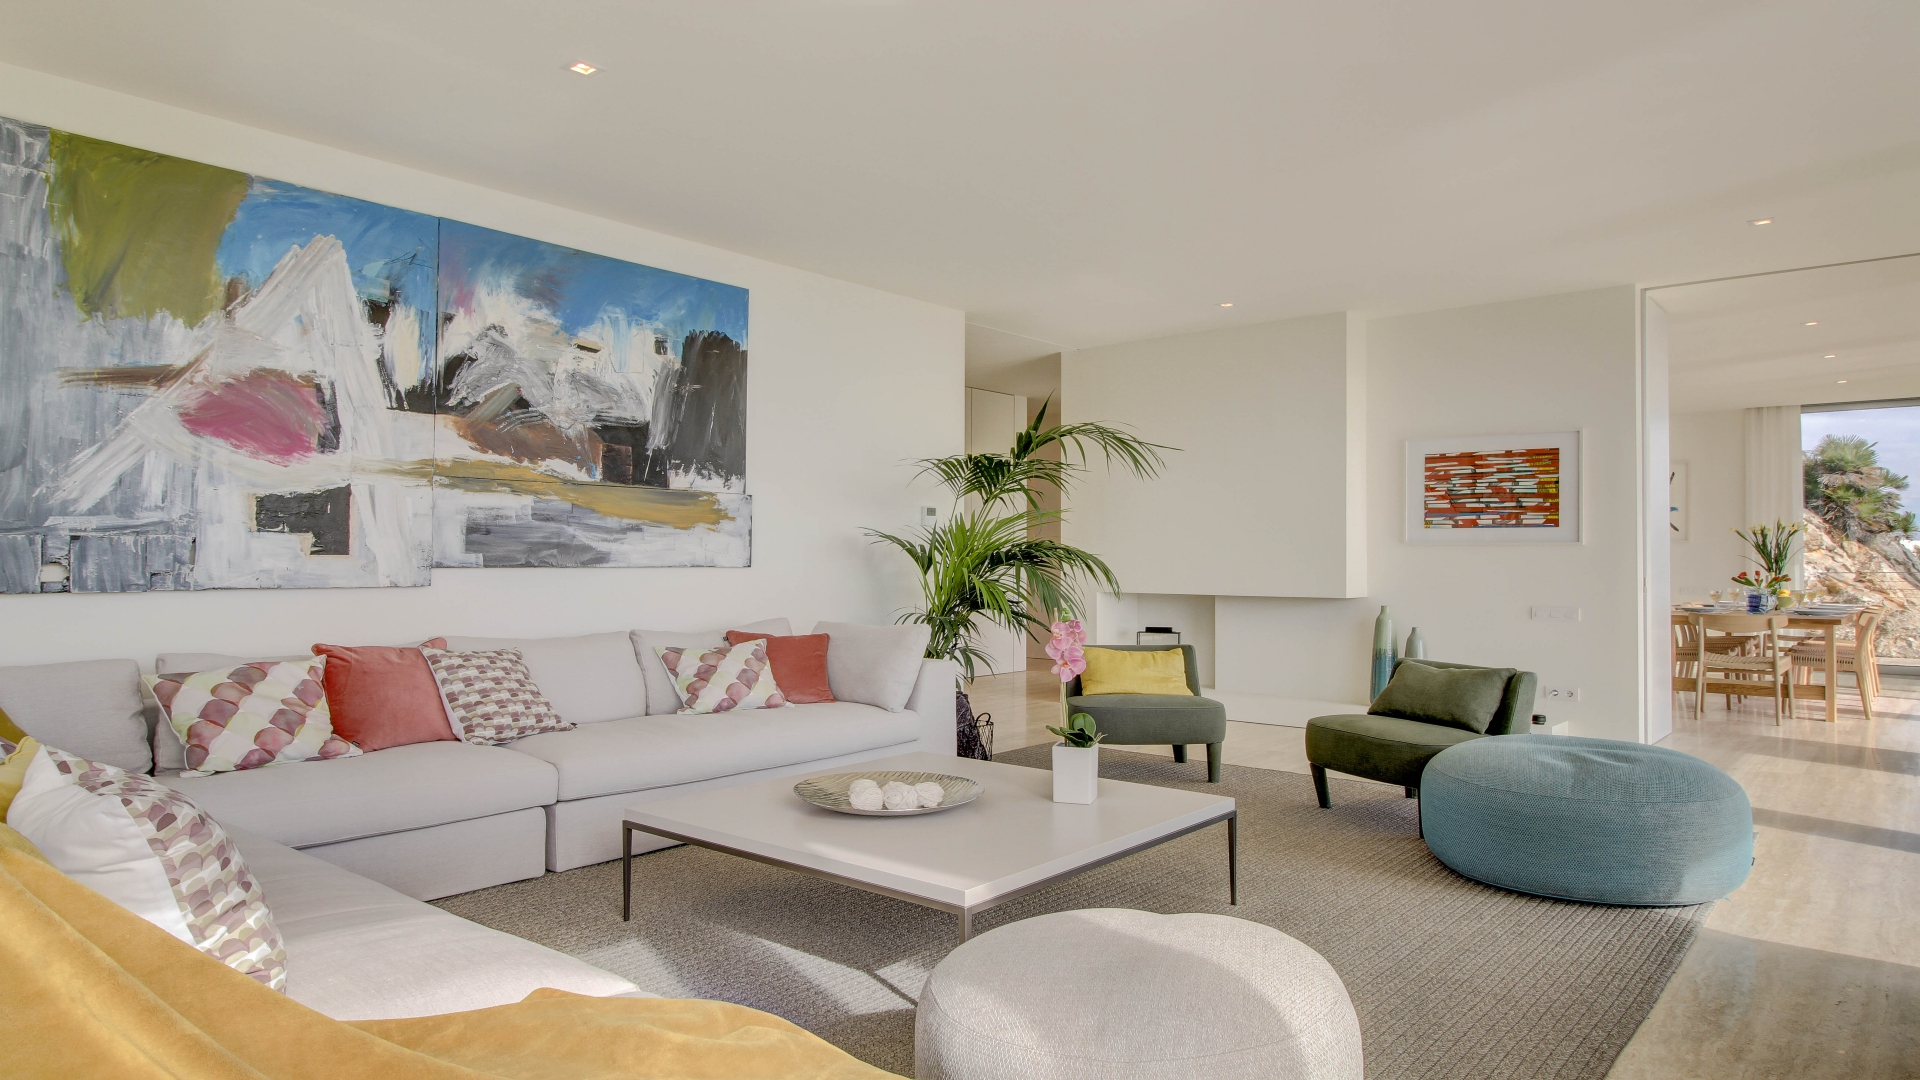 AFTER: An inviting high-end rental property giving a superb first impression